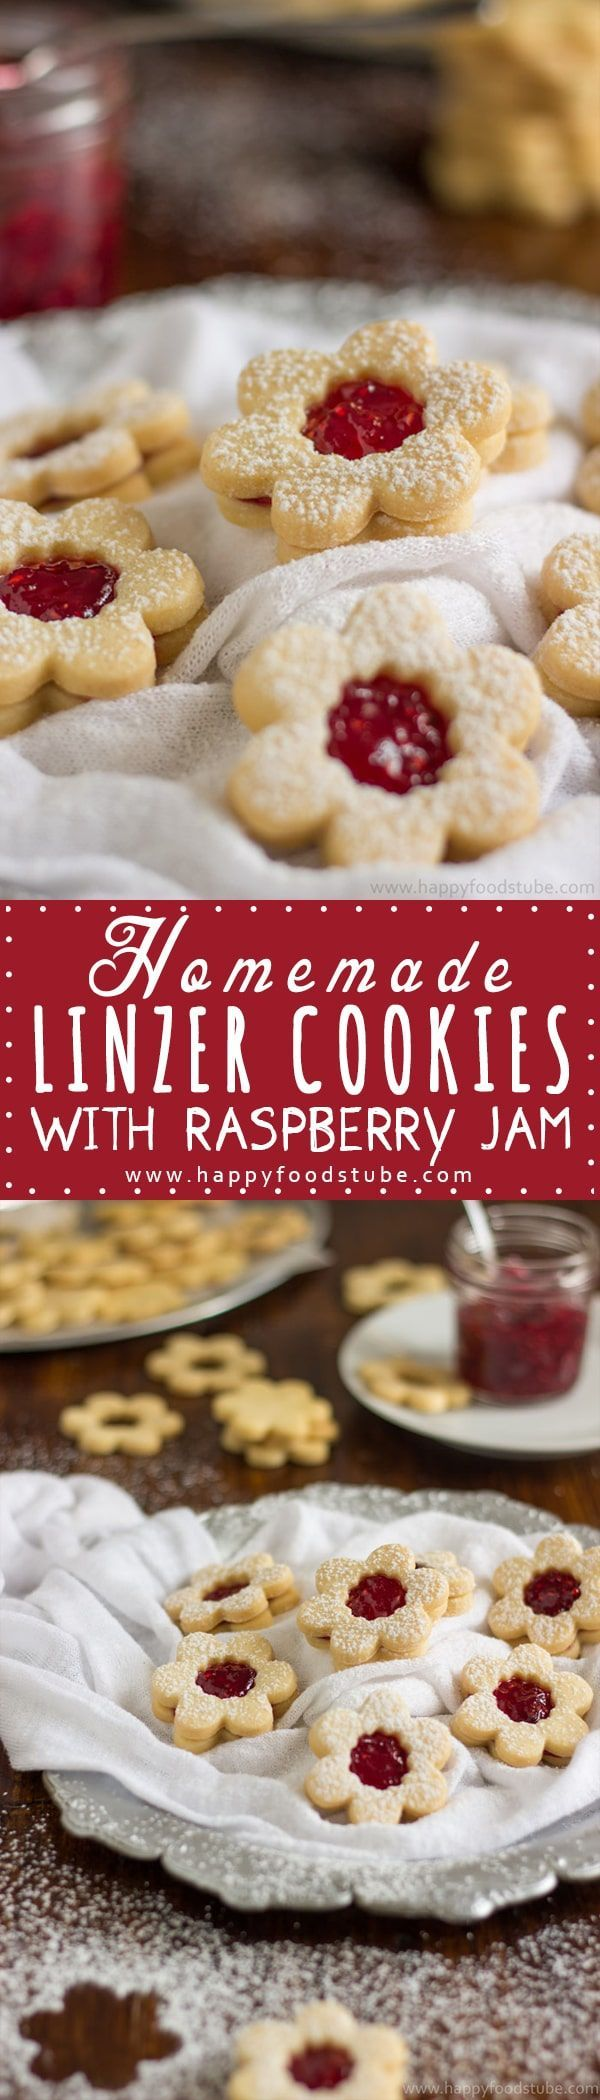 Homemade Linzer Cookies with Raspberry Jam Recipe. Their rich buttery taste that goes so well with raspberry jam makes them perfect treats for afternoon tea. Only 5 ingredients and ready in 20 minutes.